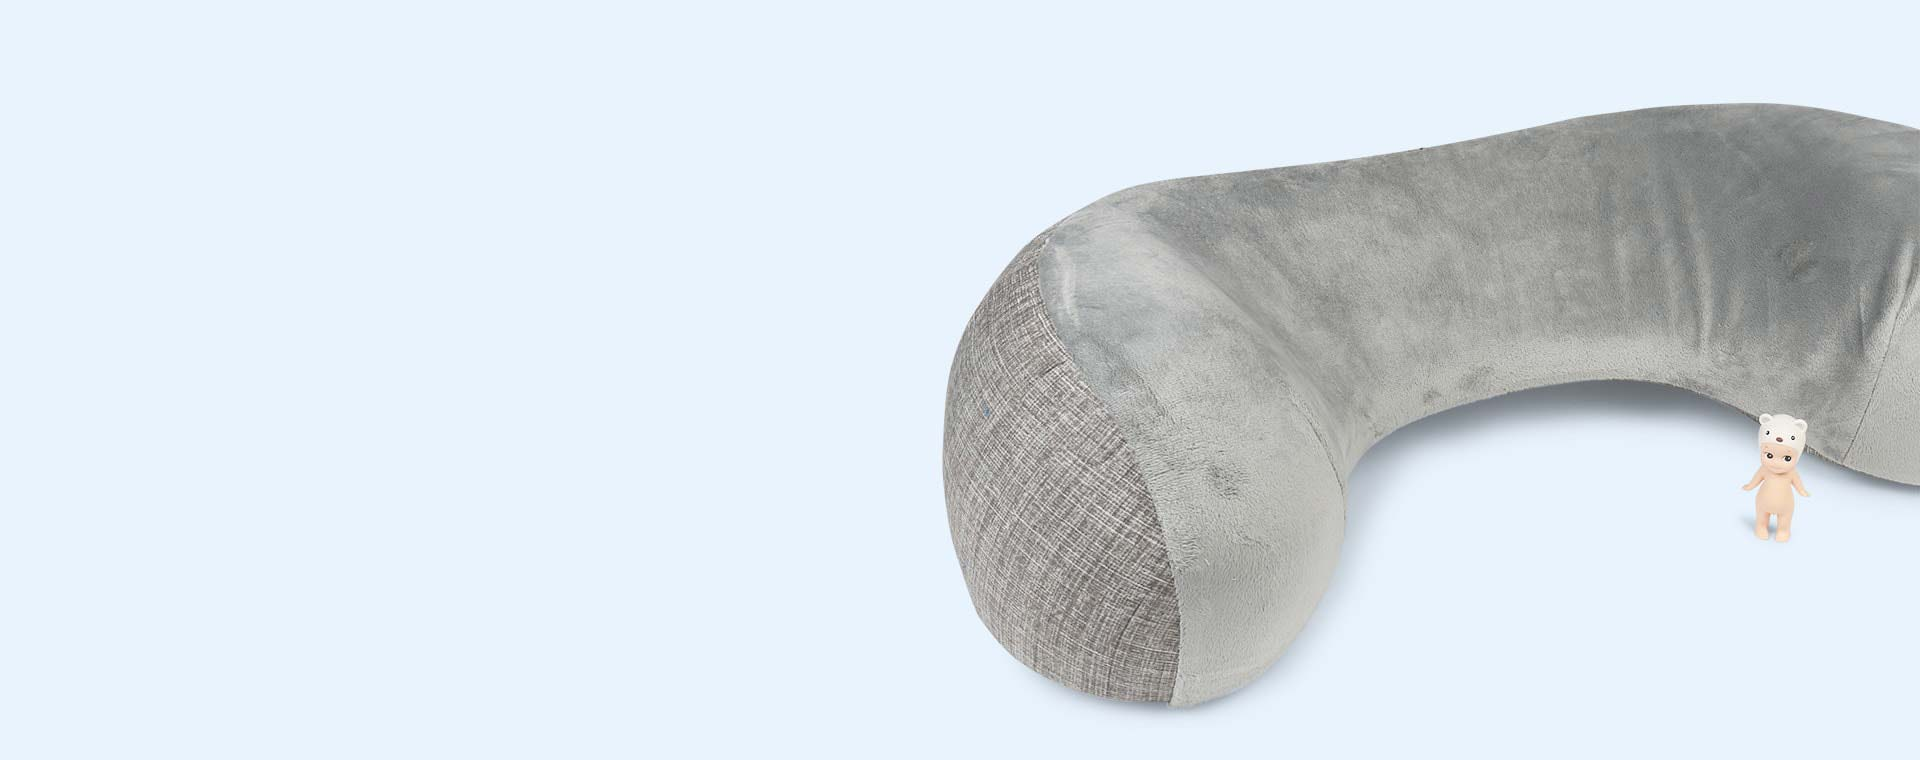 Buy The Ergobaby Natural Curve Nursing Pillow Tried